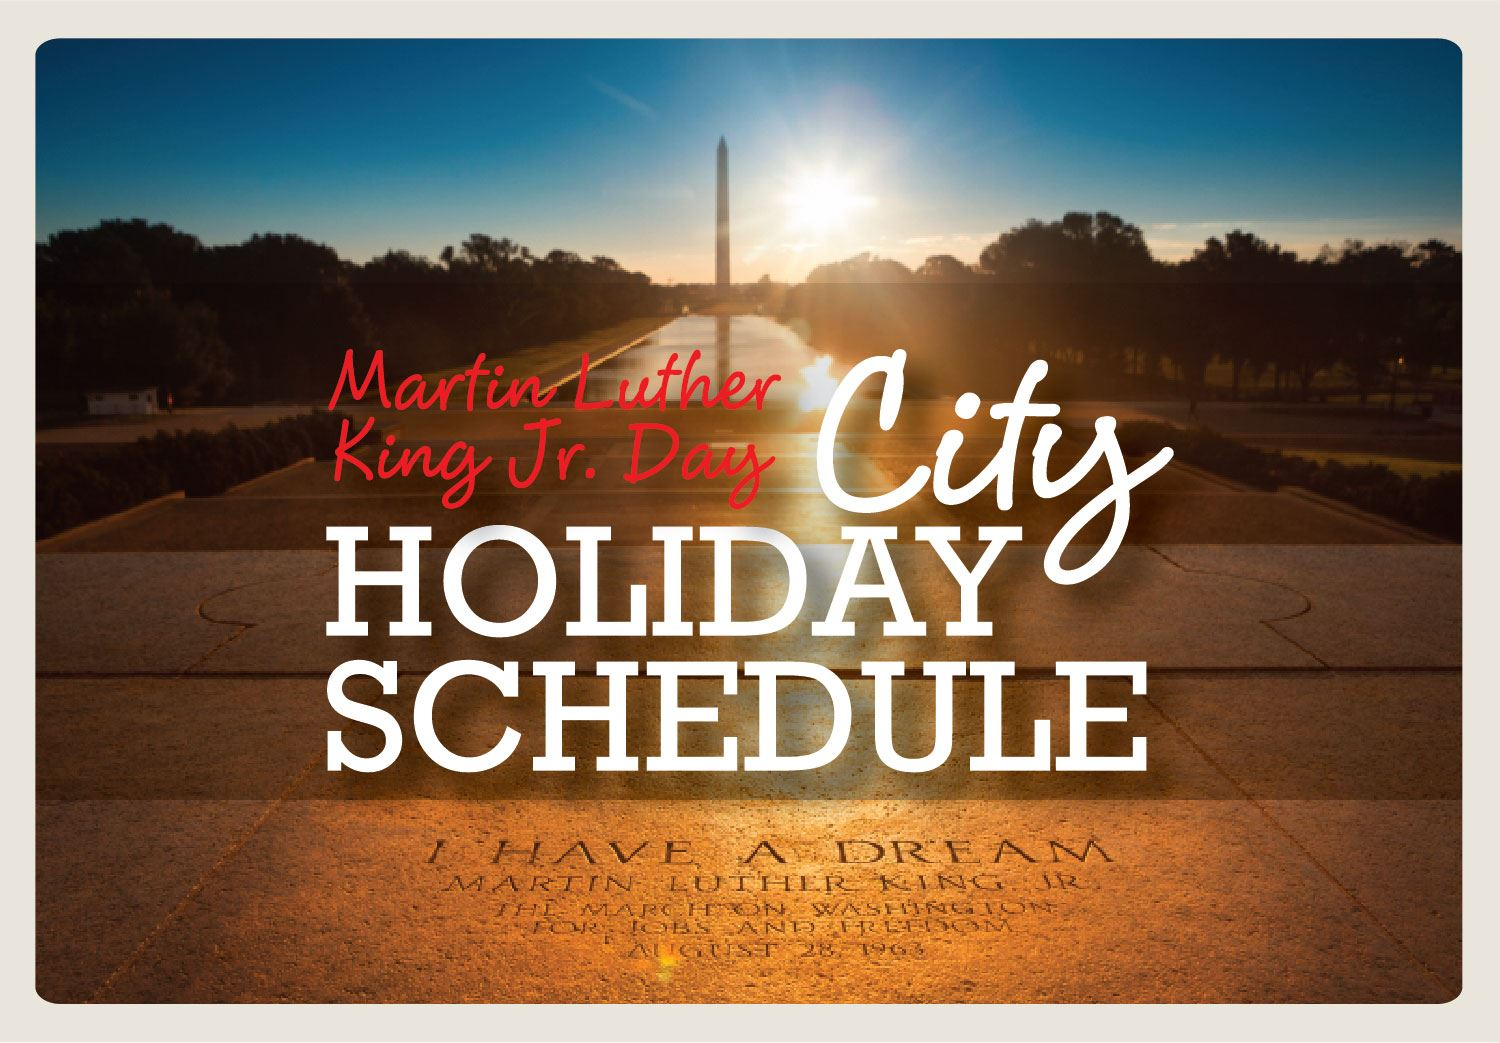 MLK_City Schedule_360x250